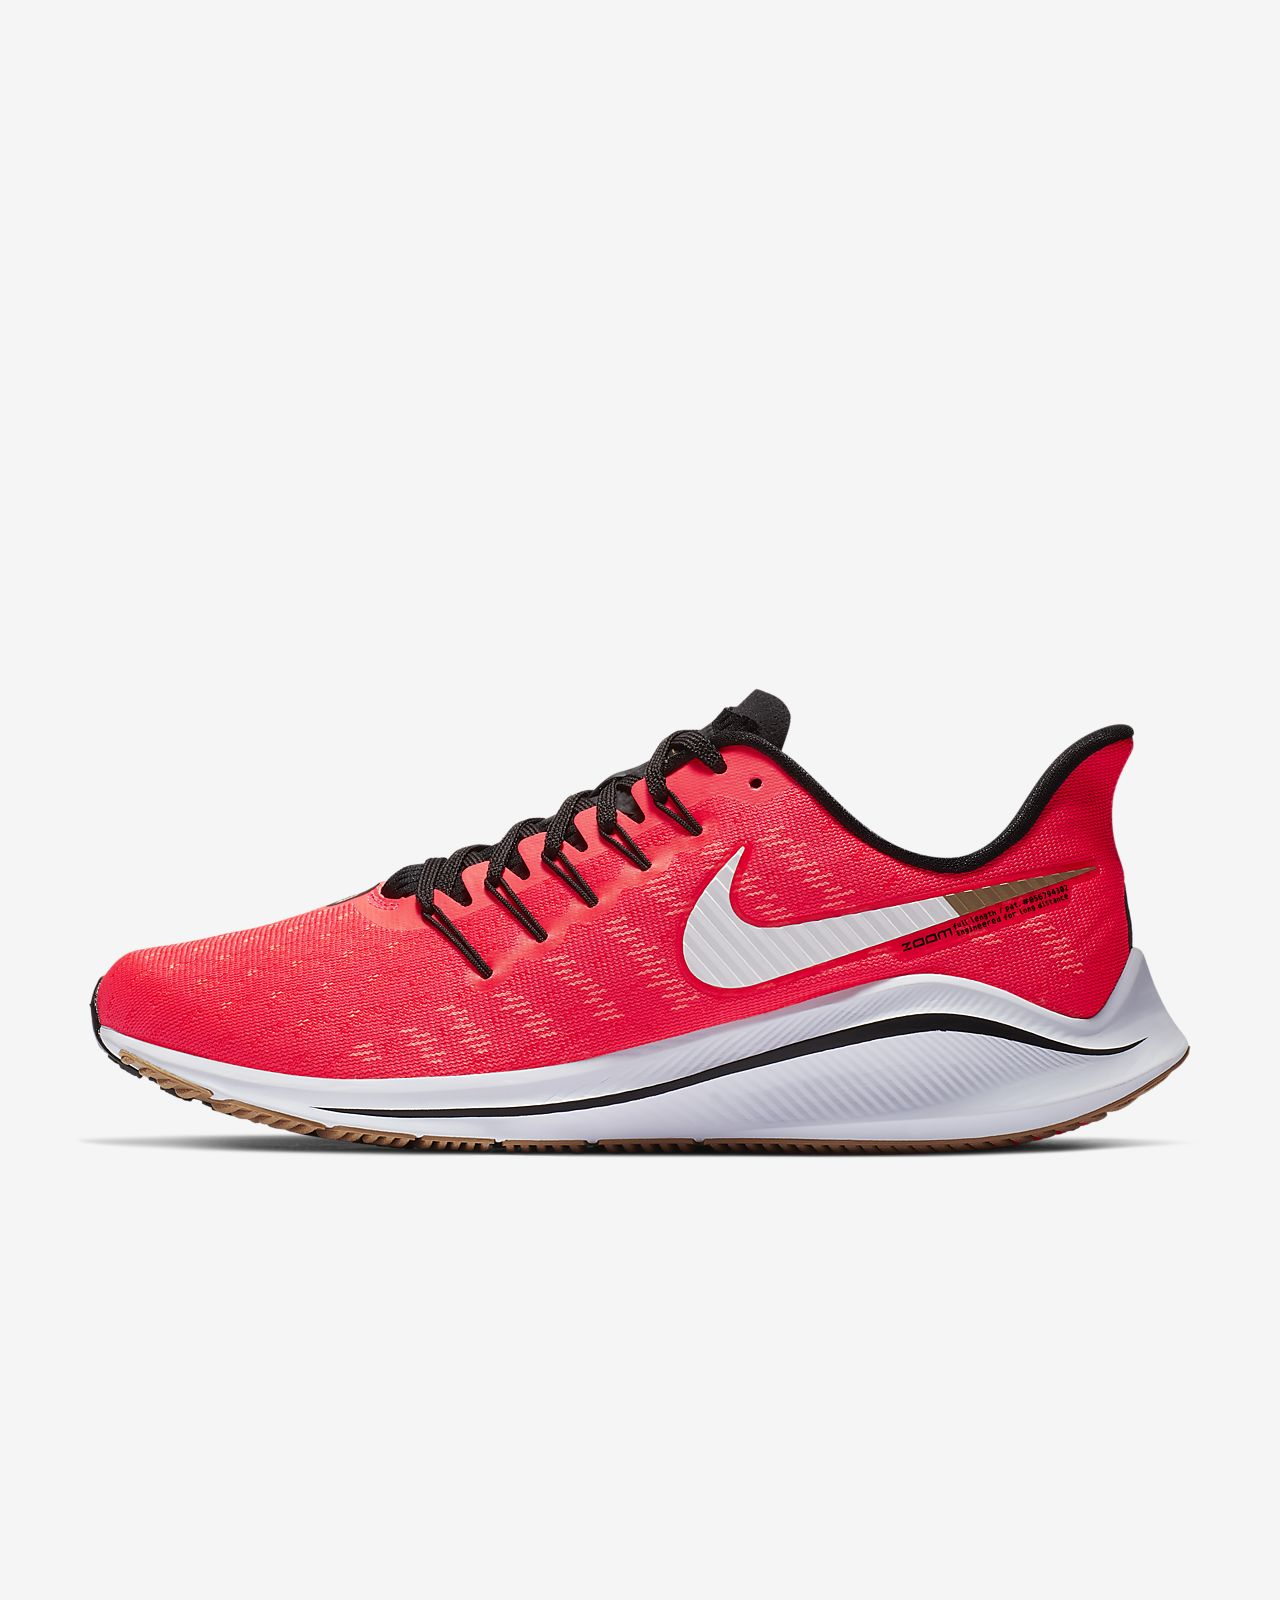 dc850124e206 Nike Air Zoom Vomero 14 Men s Running Shoe. Nike.com GB